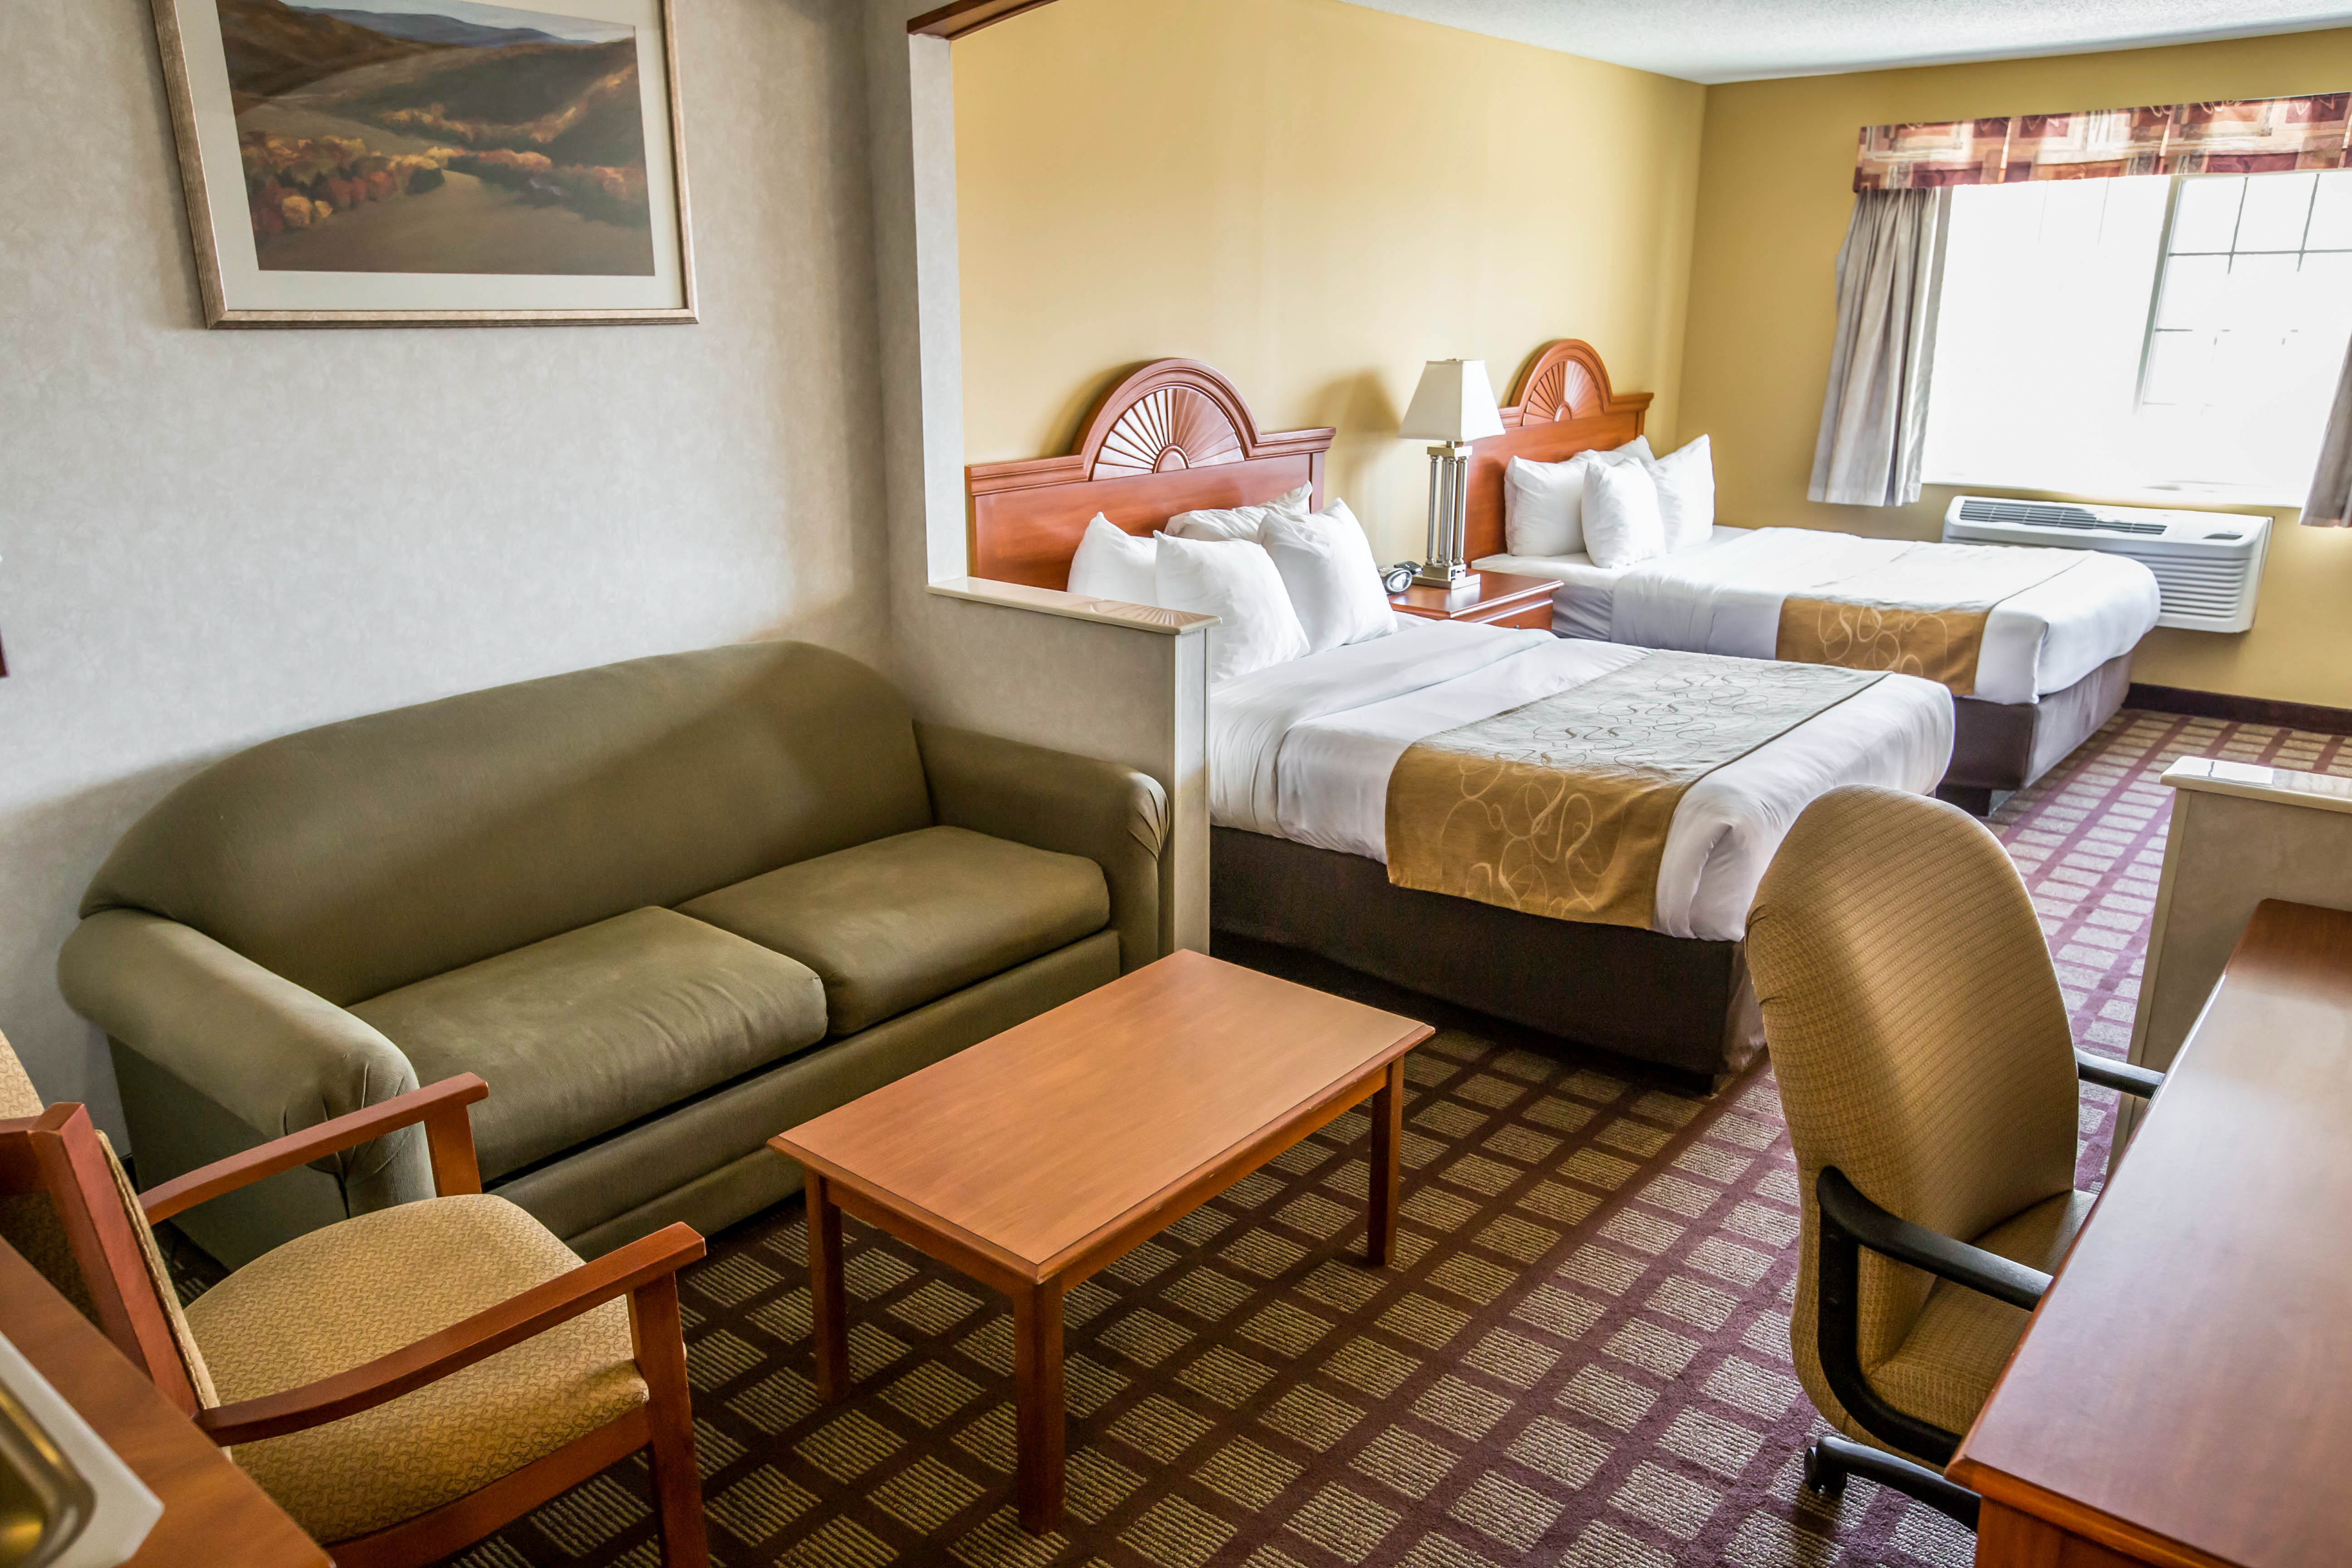 Hotels In Schaumburg Il With Jacuzzi In Room